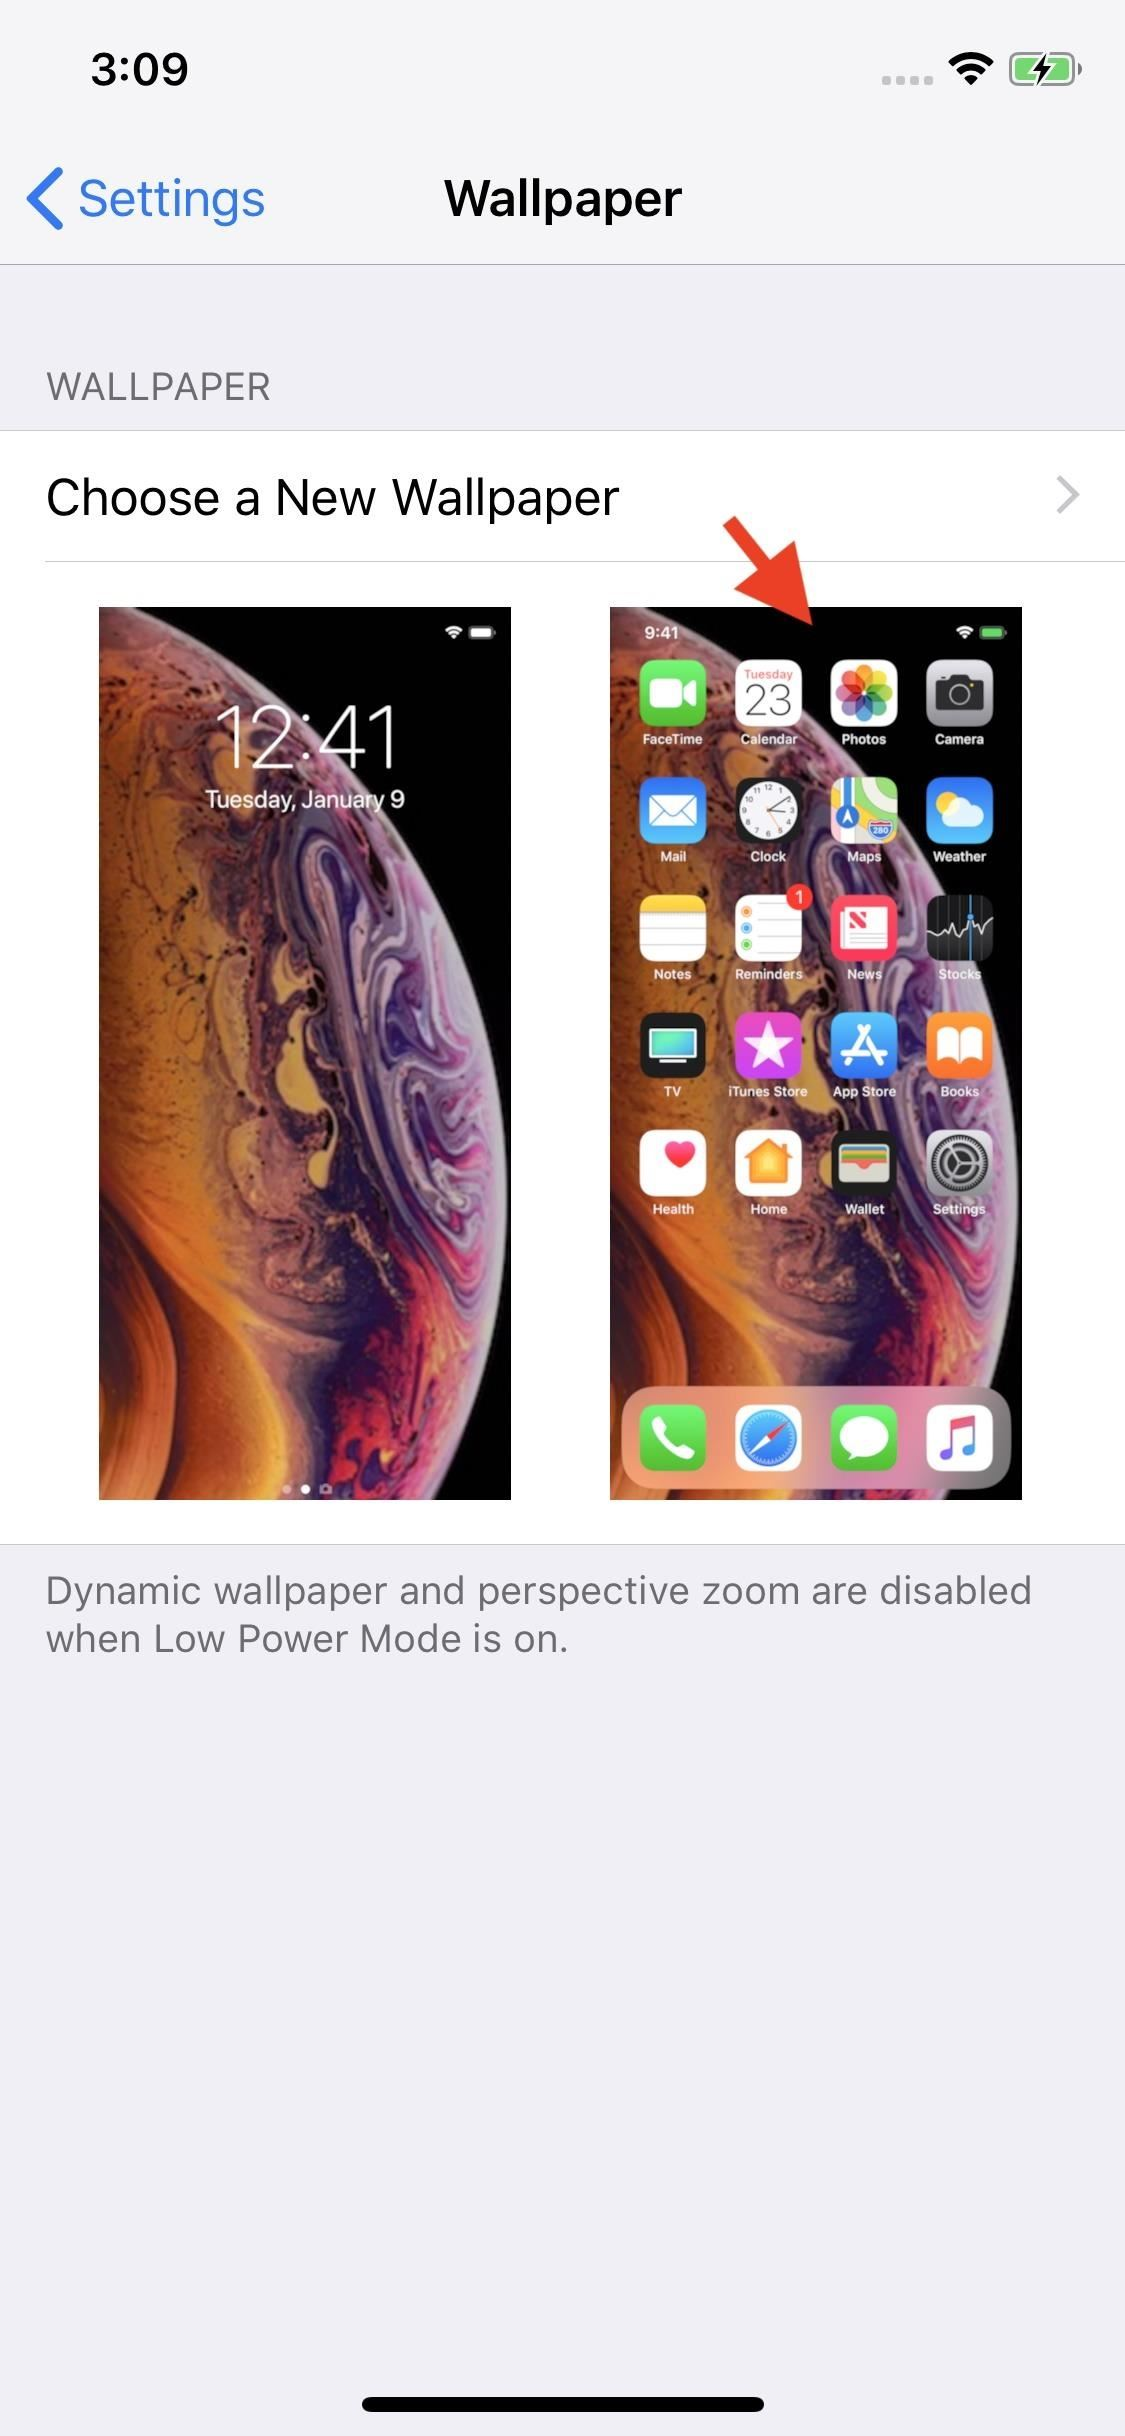 How To Disable The Parallax Effect In Ios To Reduce Motion